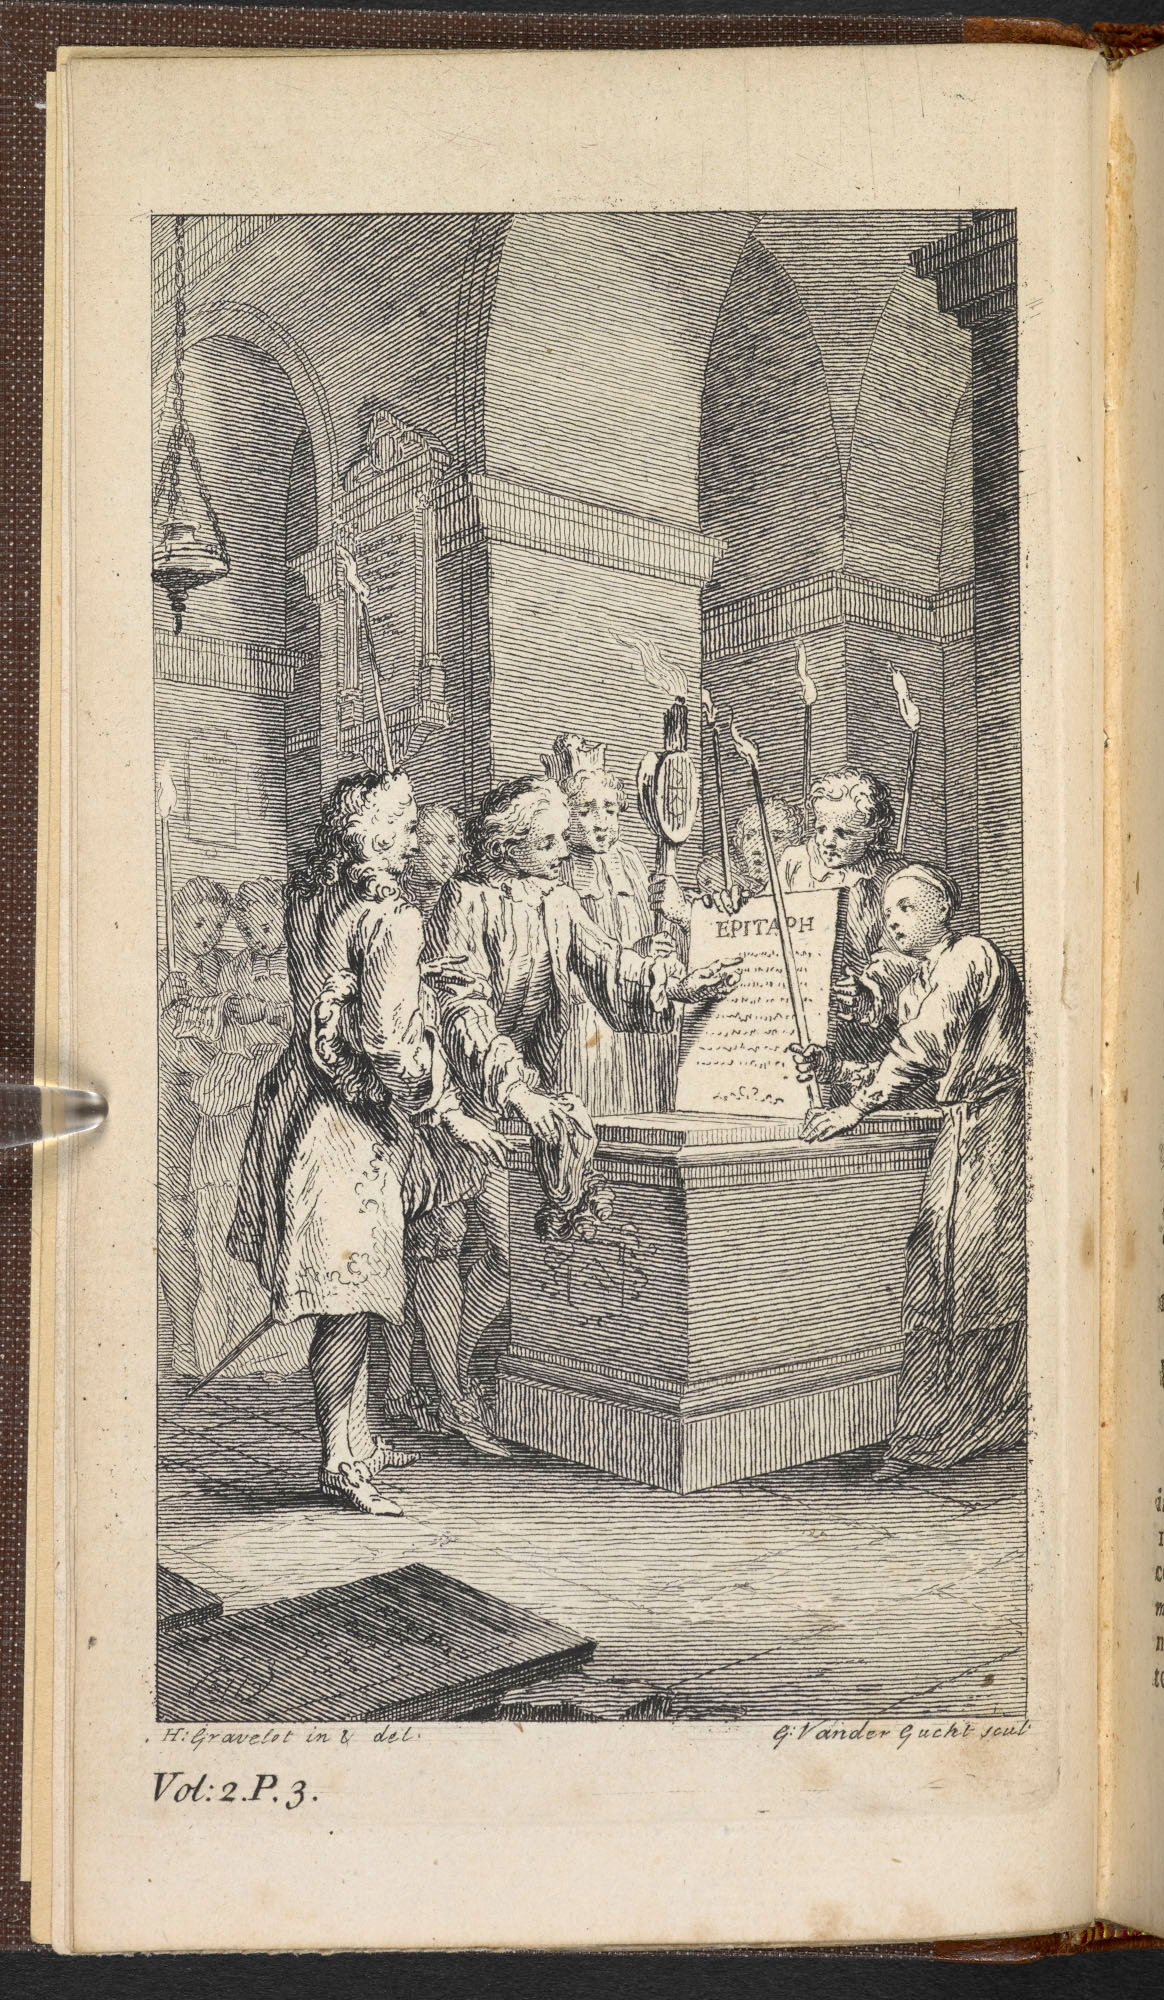 Engraving of the epitaph scene in Much Ado About Nothing in 1740 edition of Shakespeare